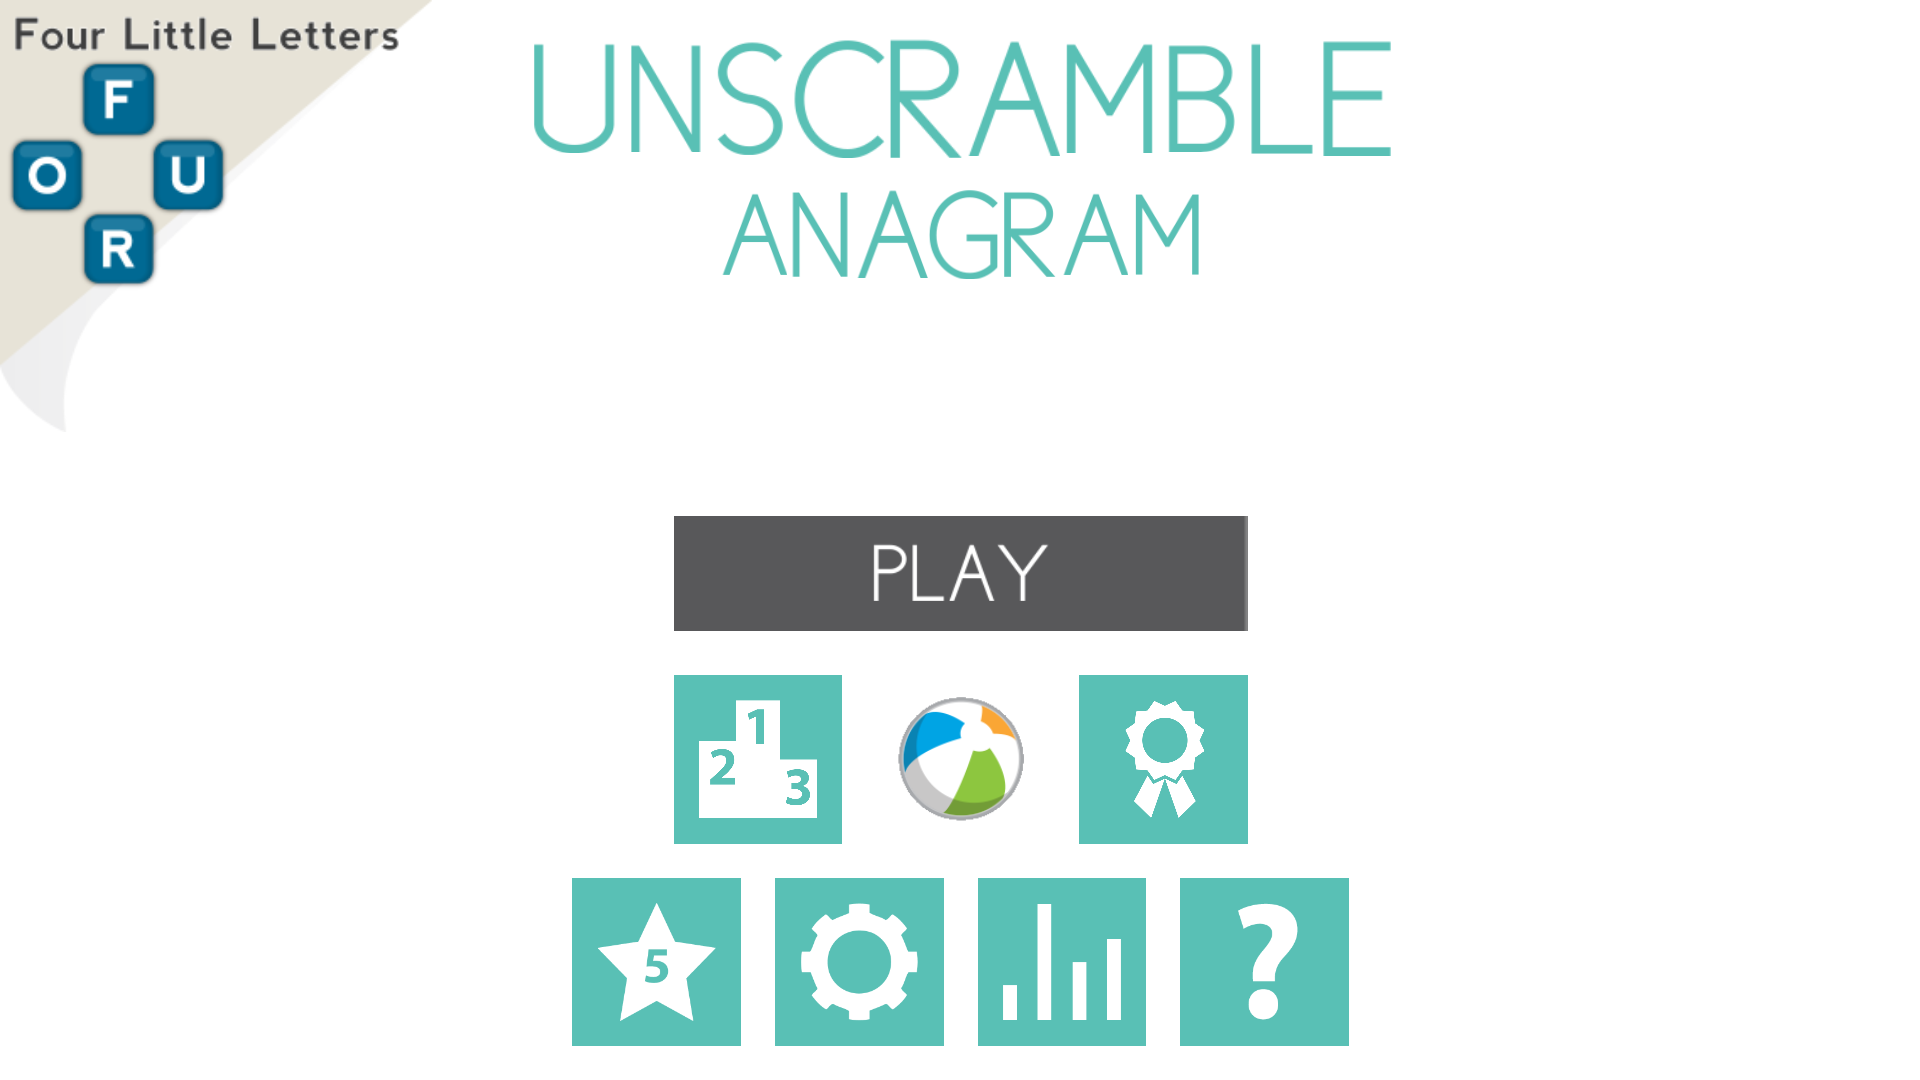 Amazon.com: Unscramble Anagram - Twist, Jumble and Unscramble Words from Text ...